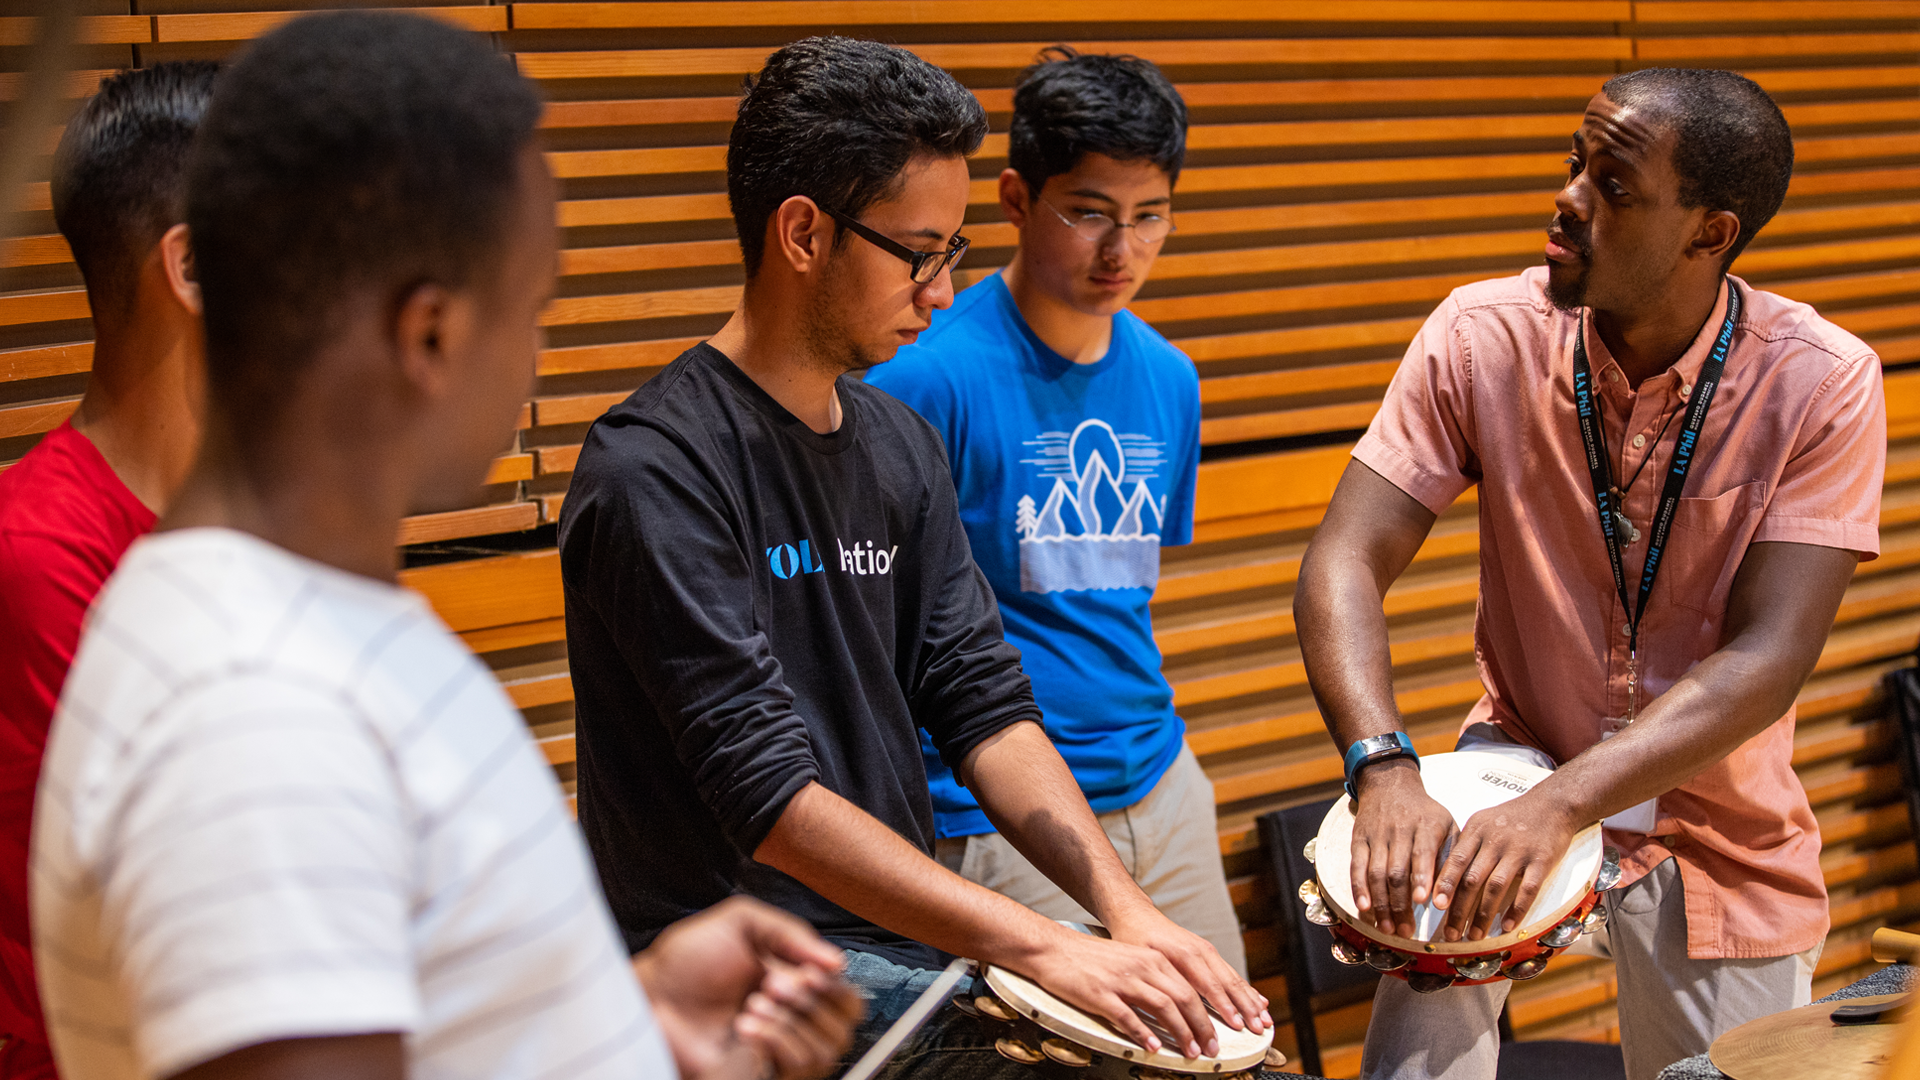 Members of the YOLA National Faculty leading percussion symposium